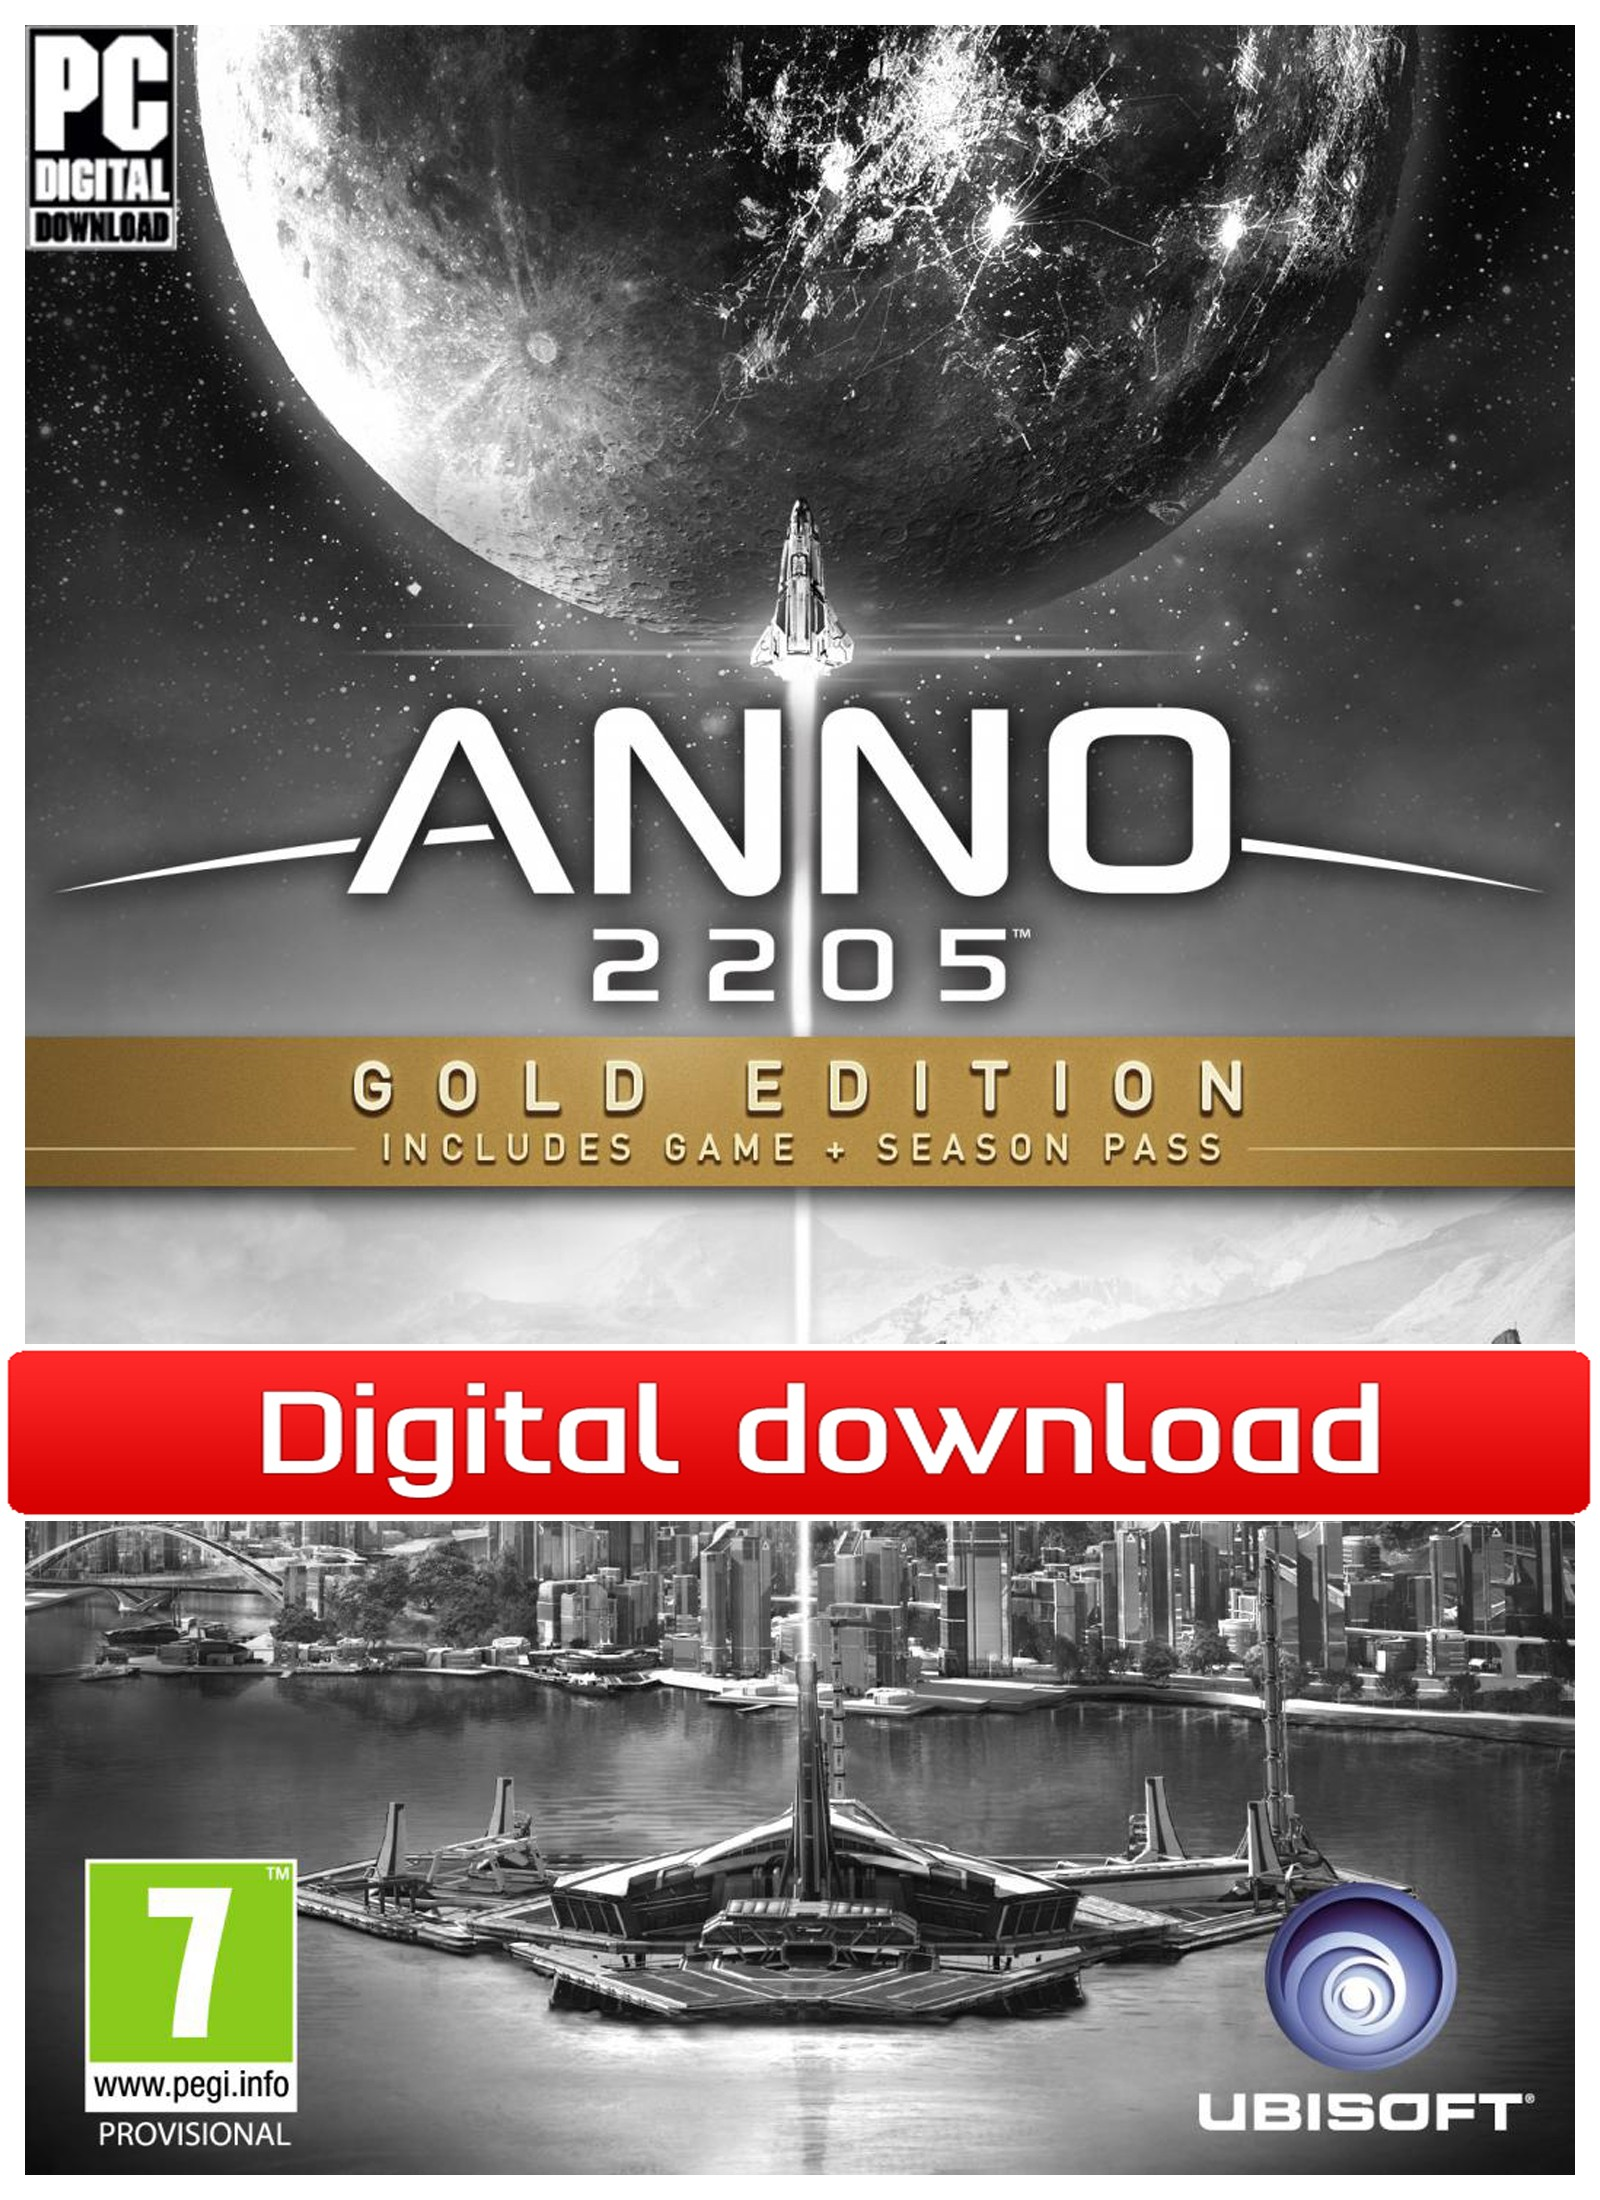 37304 : Anno 2205 Gold Edition (PC nedlastning)